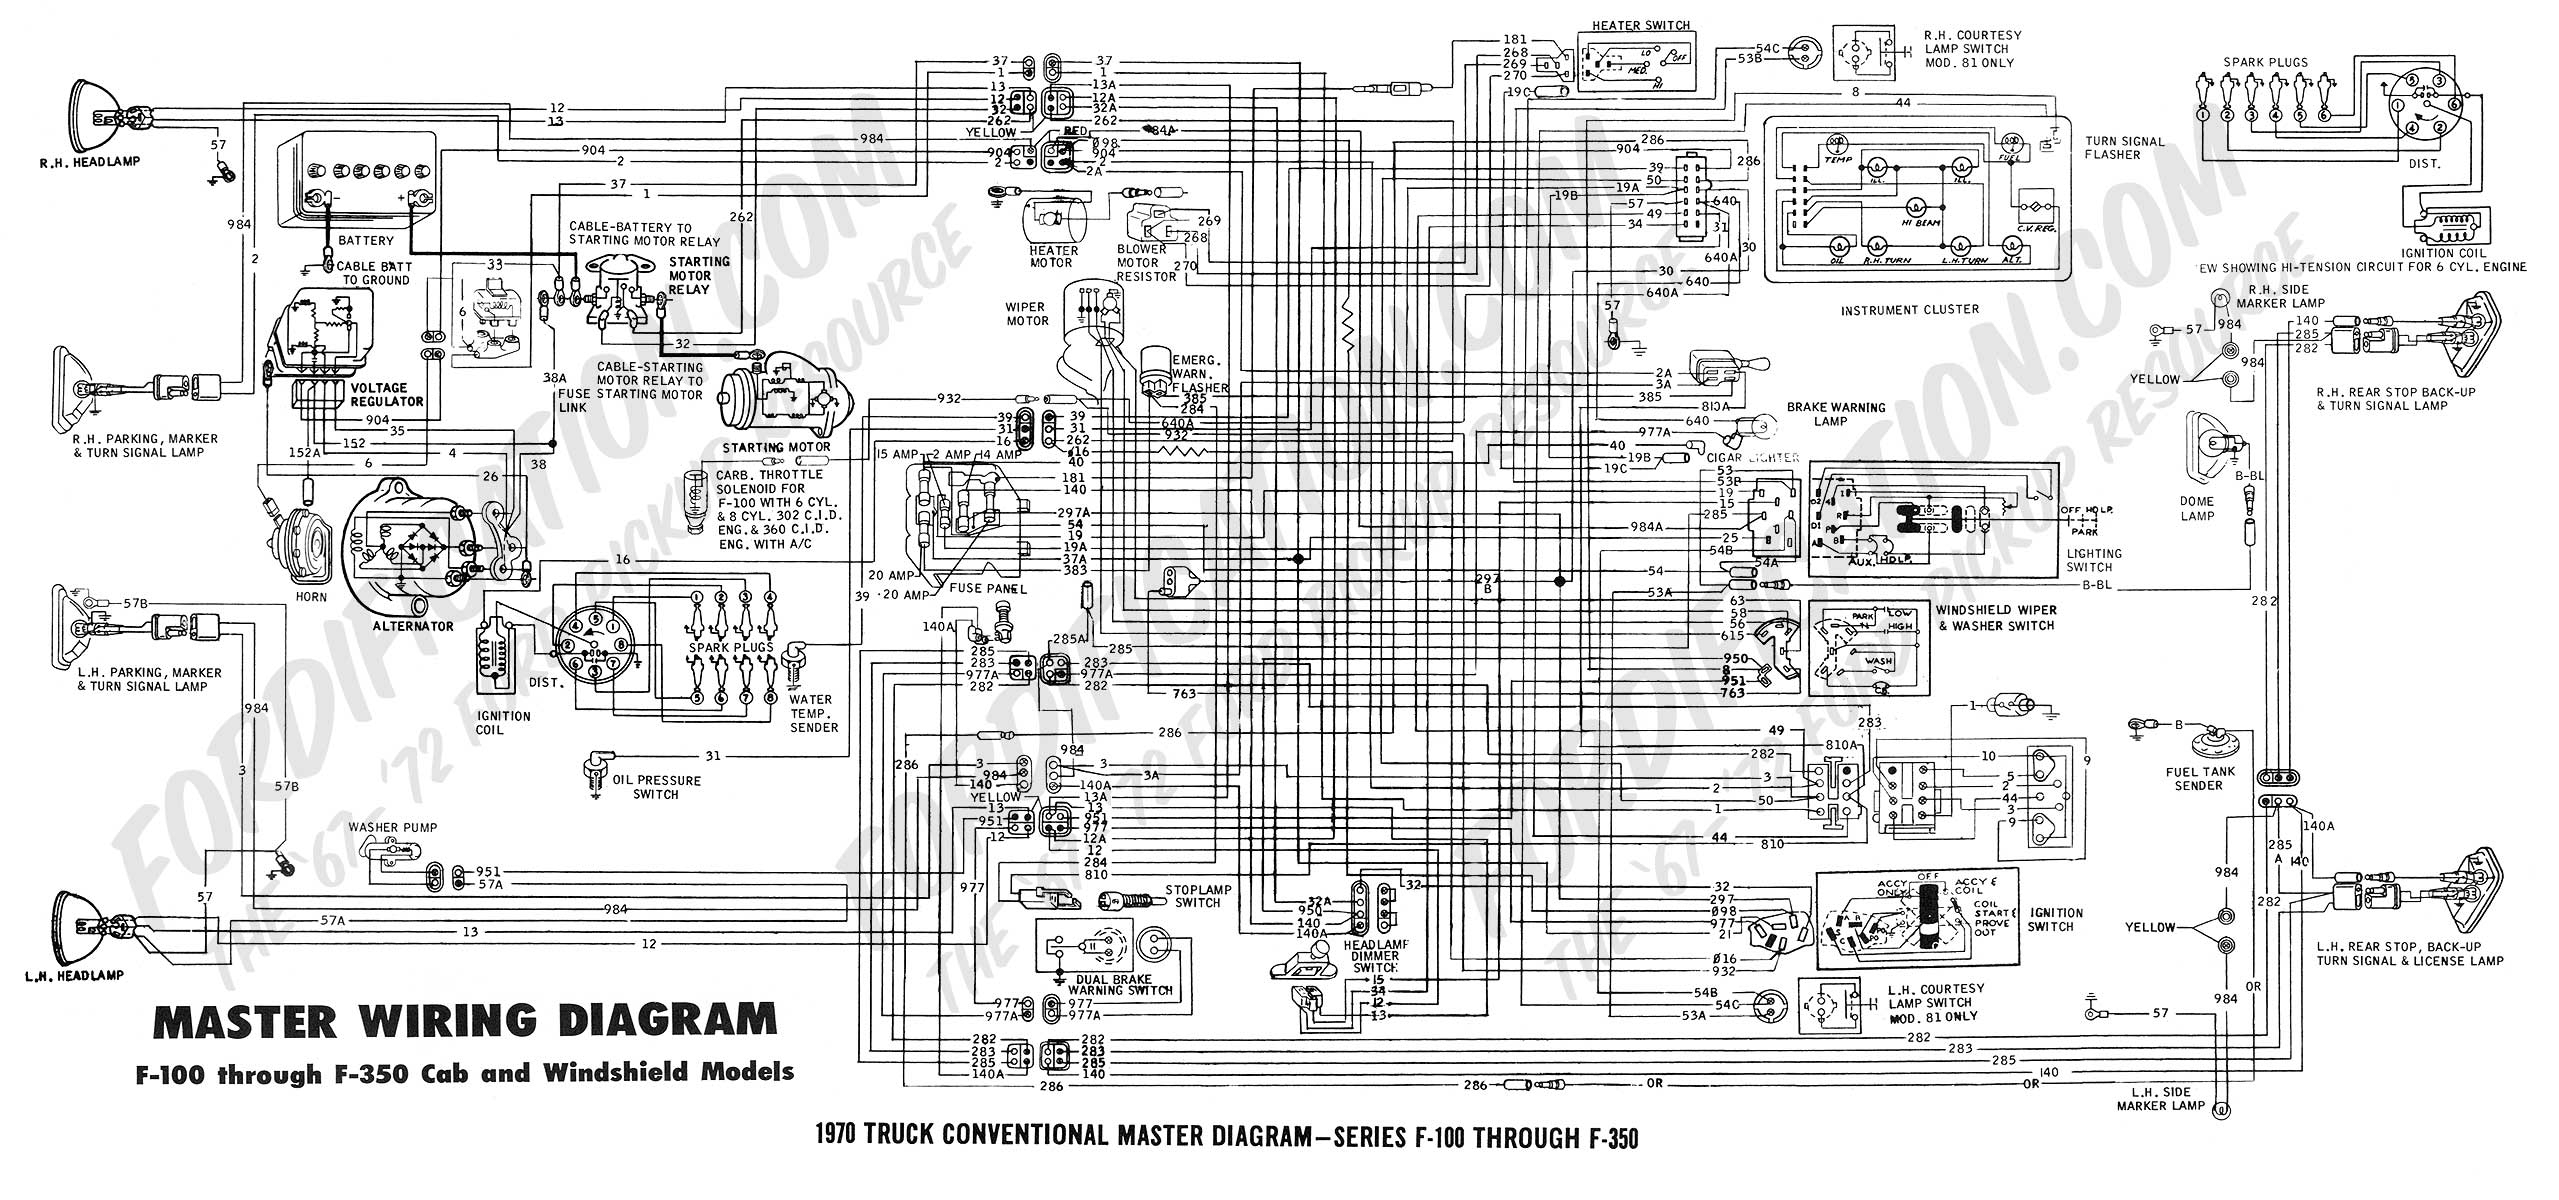 2005 Ford F350 Wiring Diagram - Wiring Diagrams Click - 2005 F350 Trailer Wiring Diagram